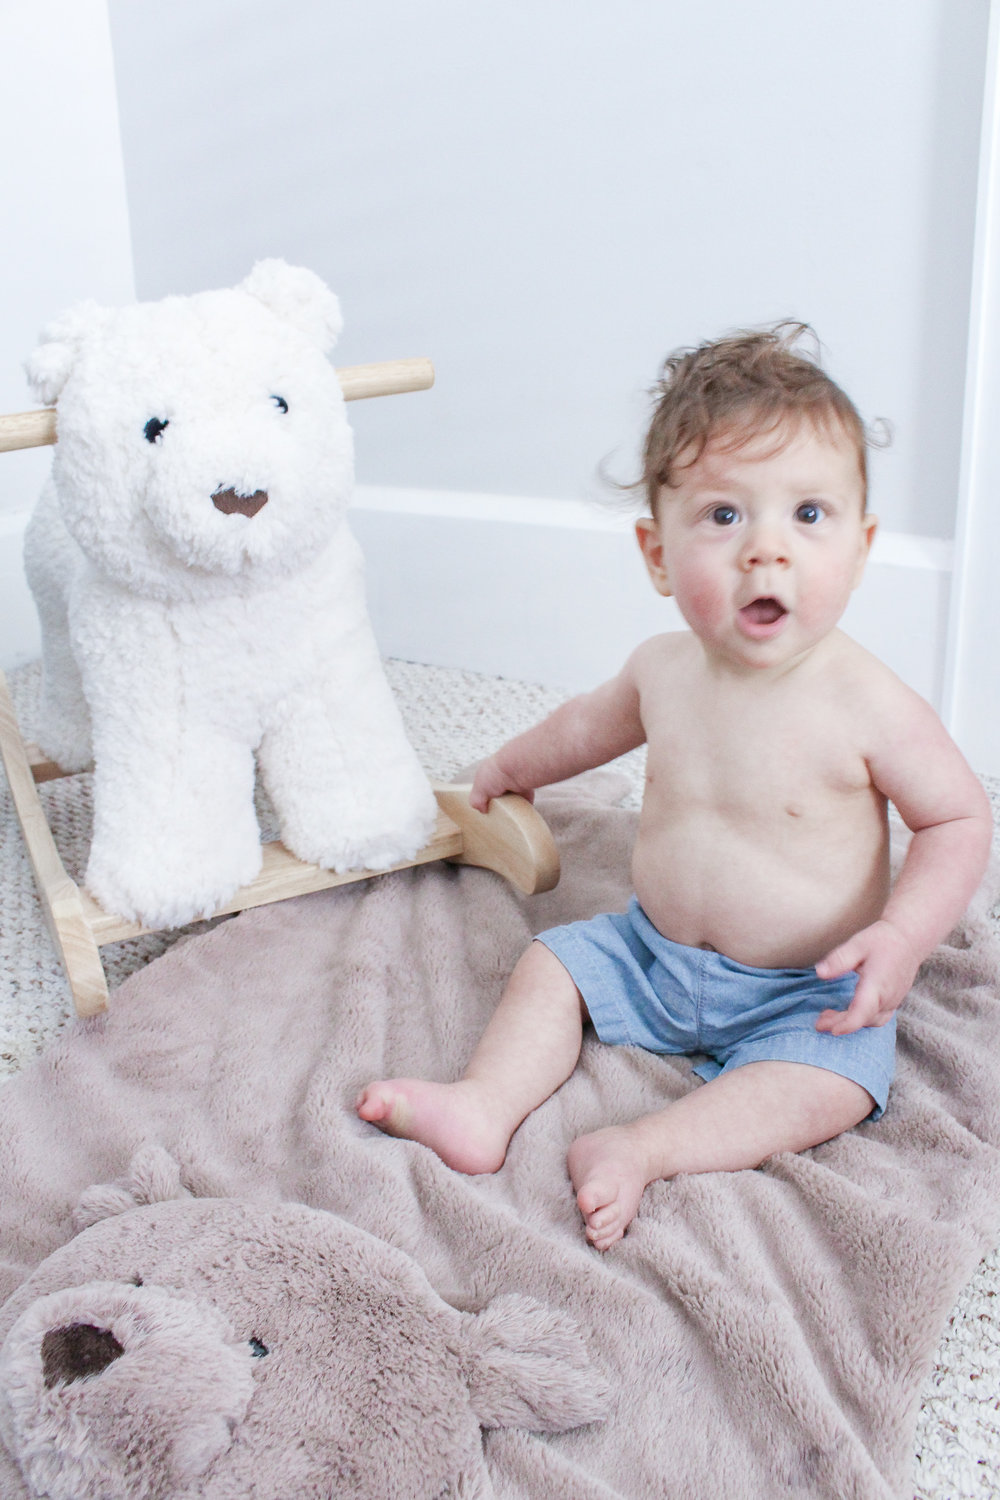 Dominic sitting next to his bear